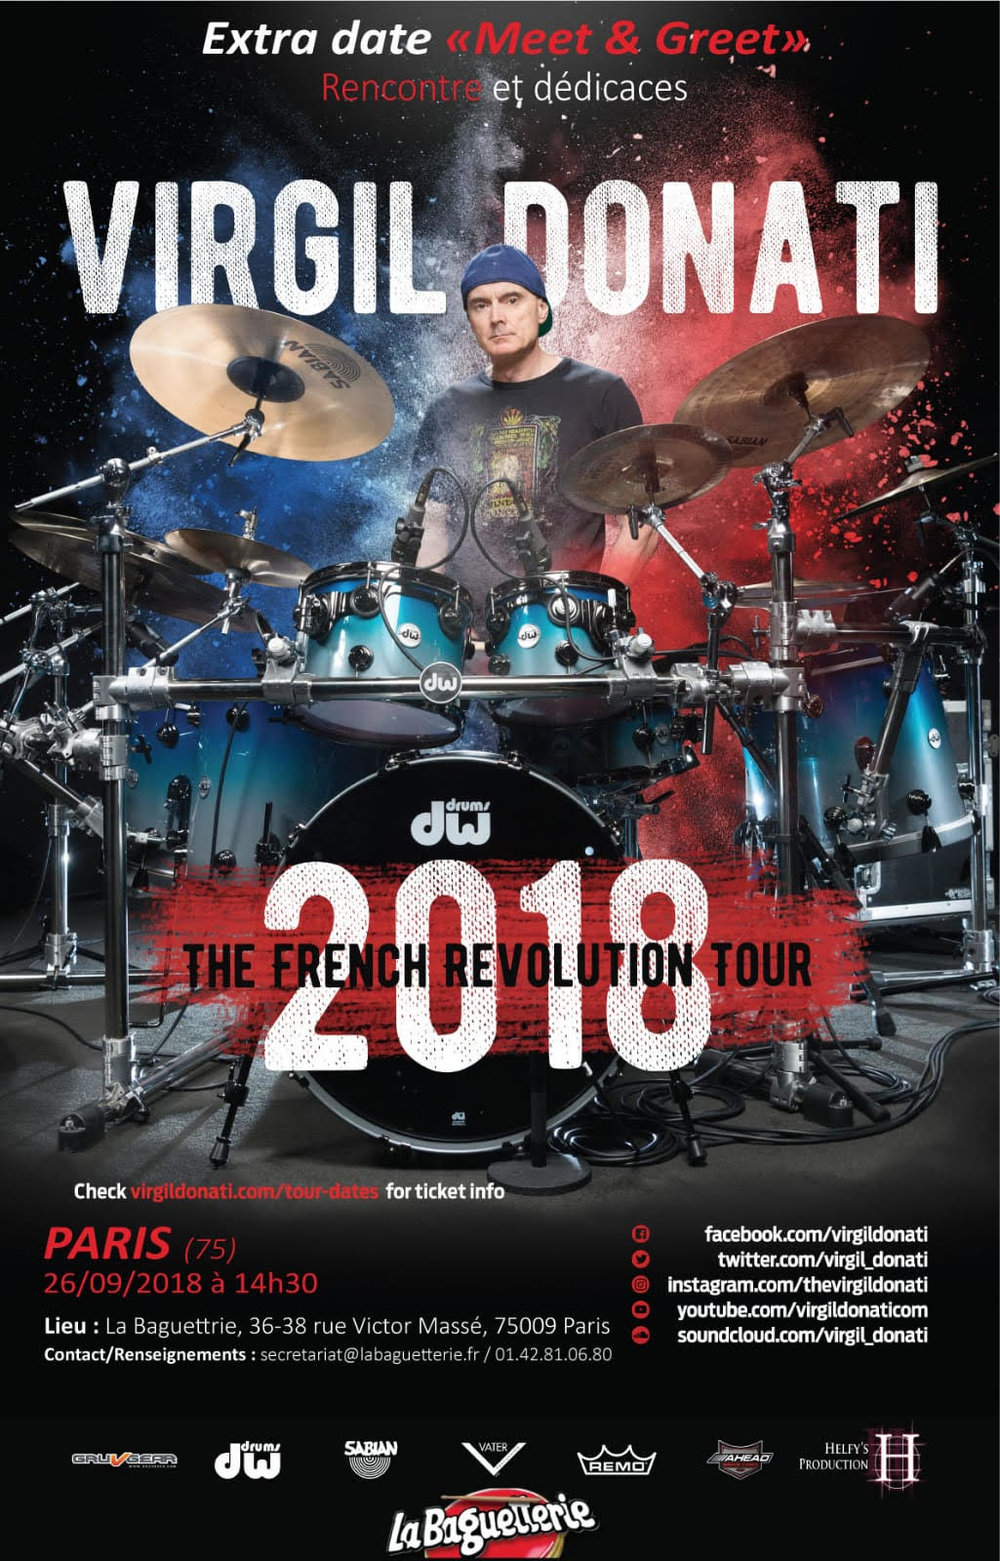 Meet Greet Added To Upcoming French Revolution Tour Virgil Donati